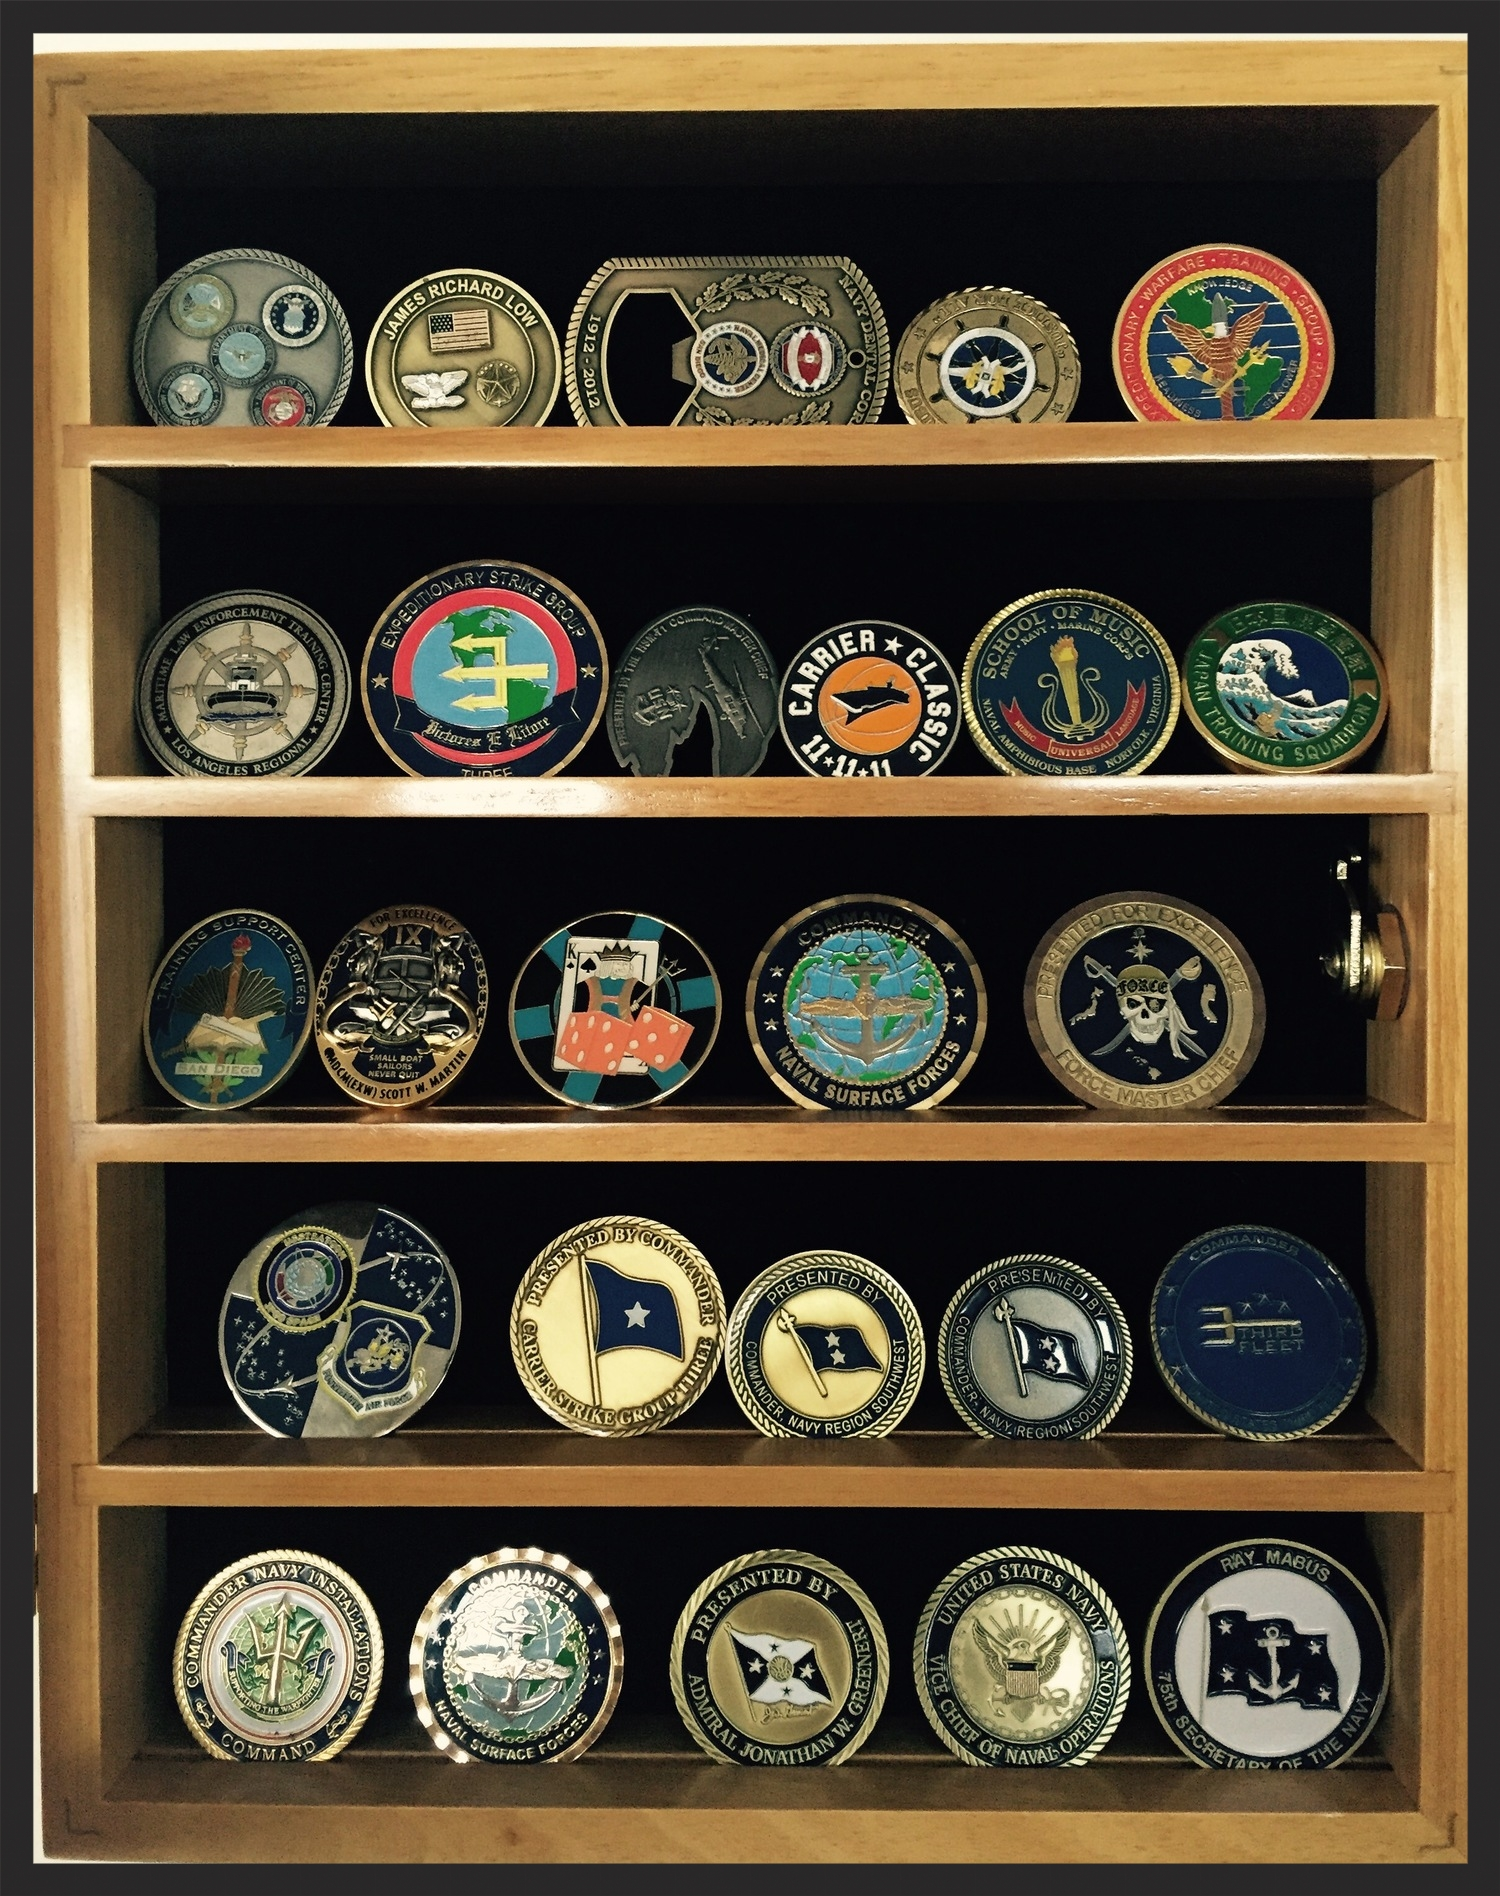 26challenge coins, proudly displayed at myhome in San Diego, CA.